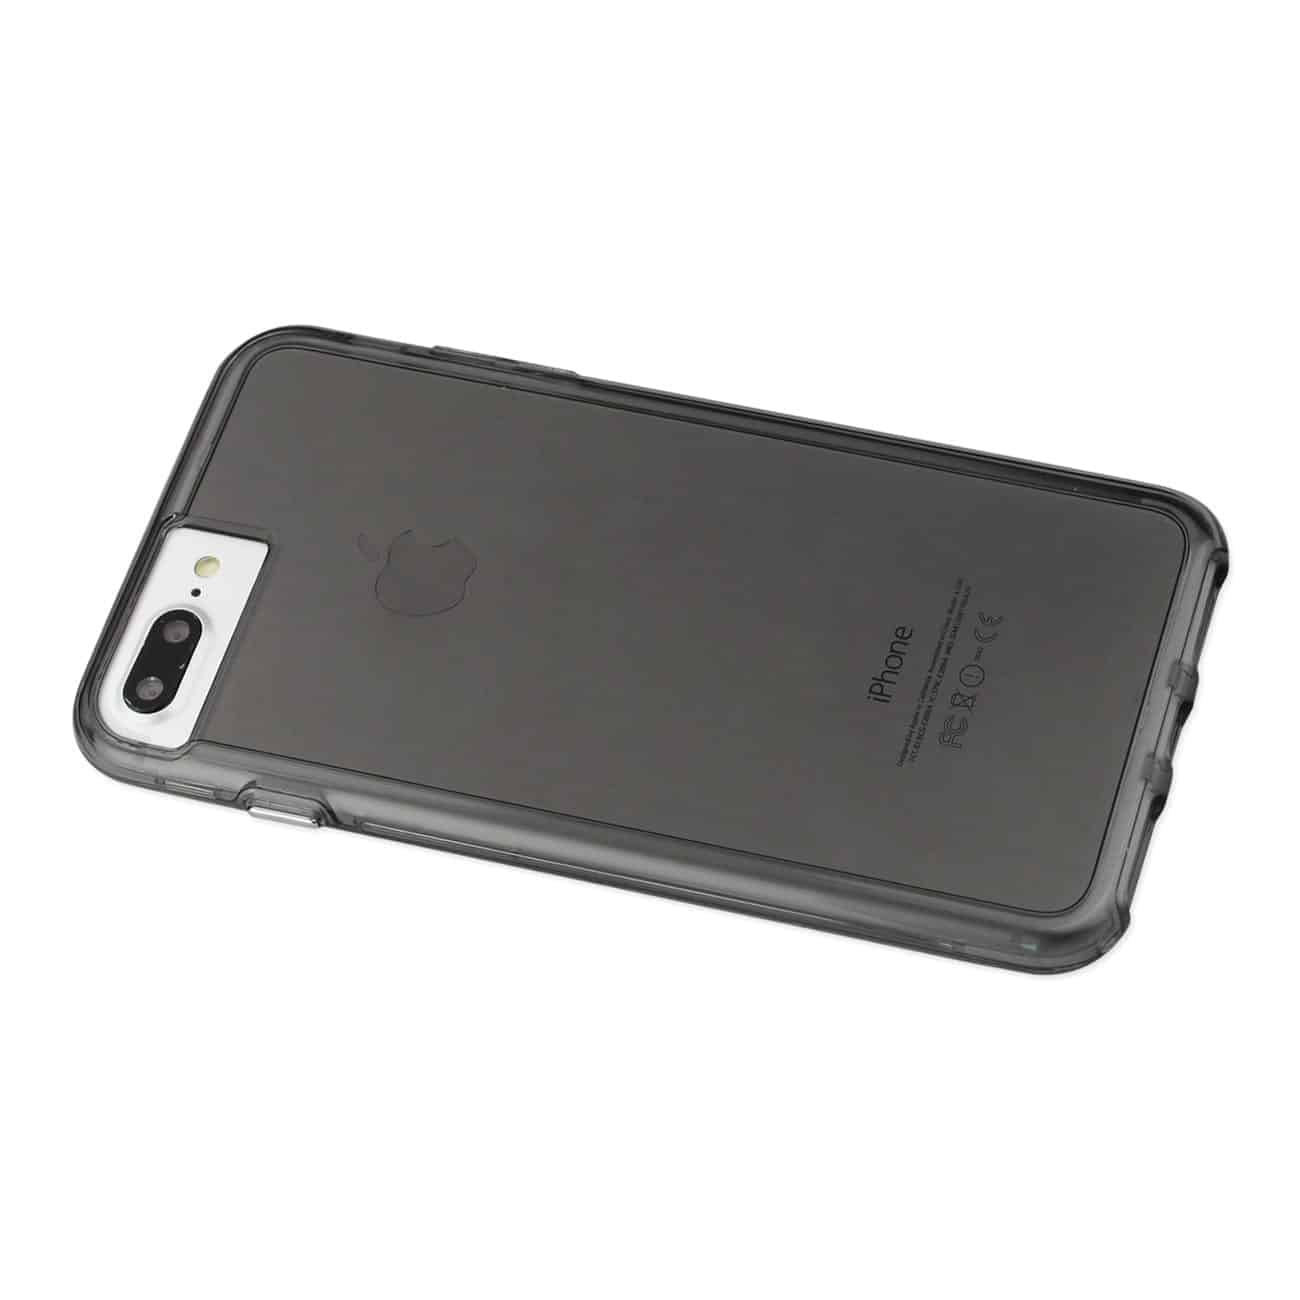 IPHONE 7 PLUS TRANSPARENT TPU HARD PROTECTOR COVER WITH INNER EXTRA BUMPER IN CLEAR GRAY